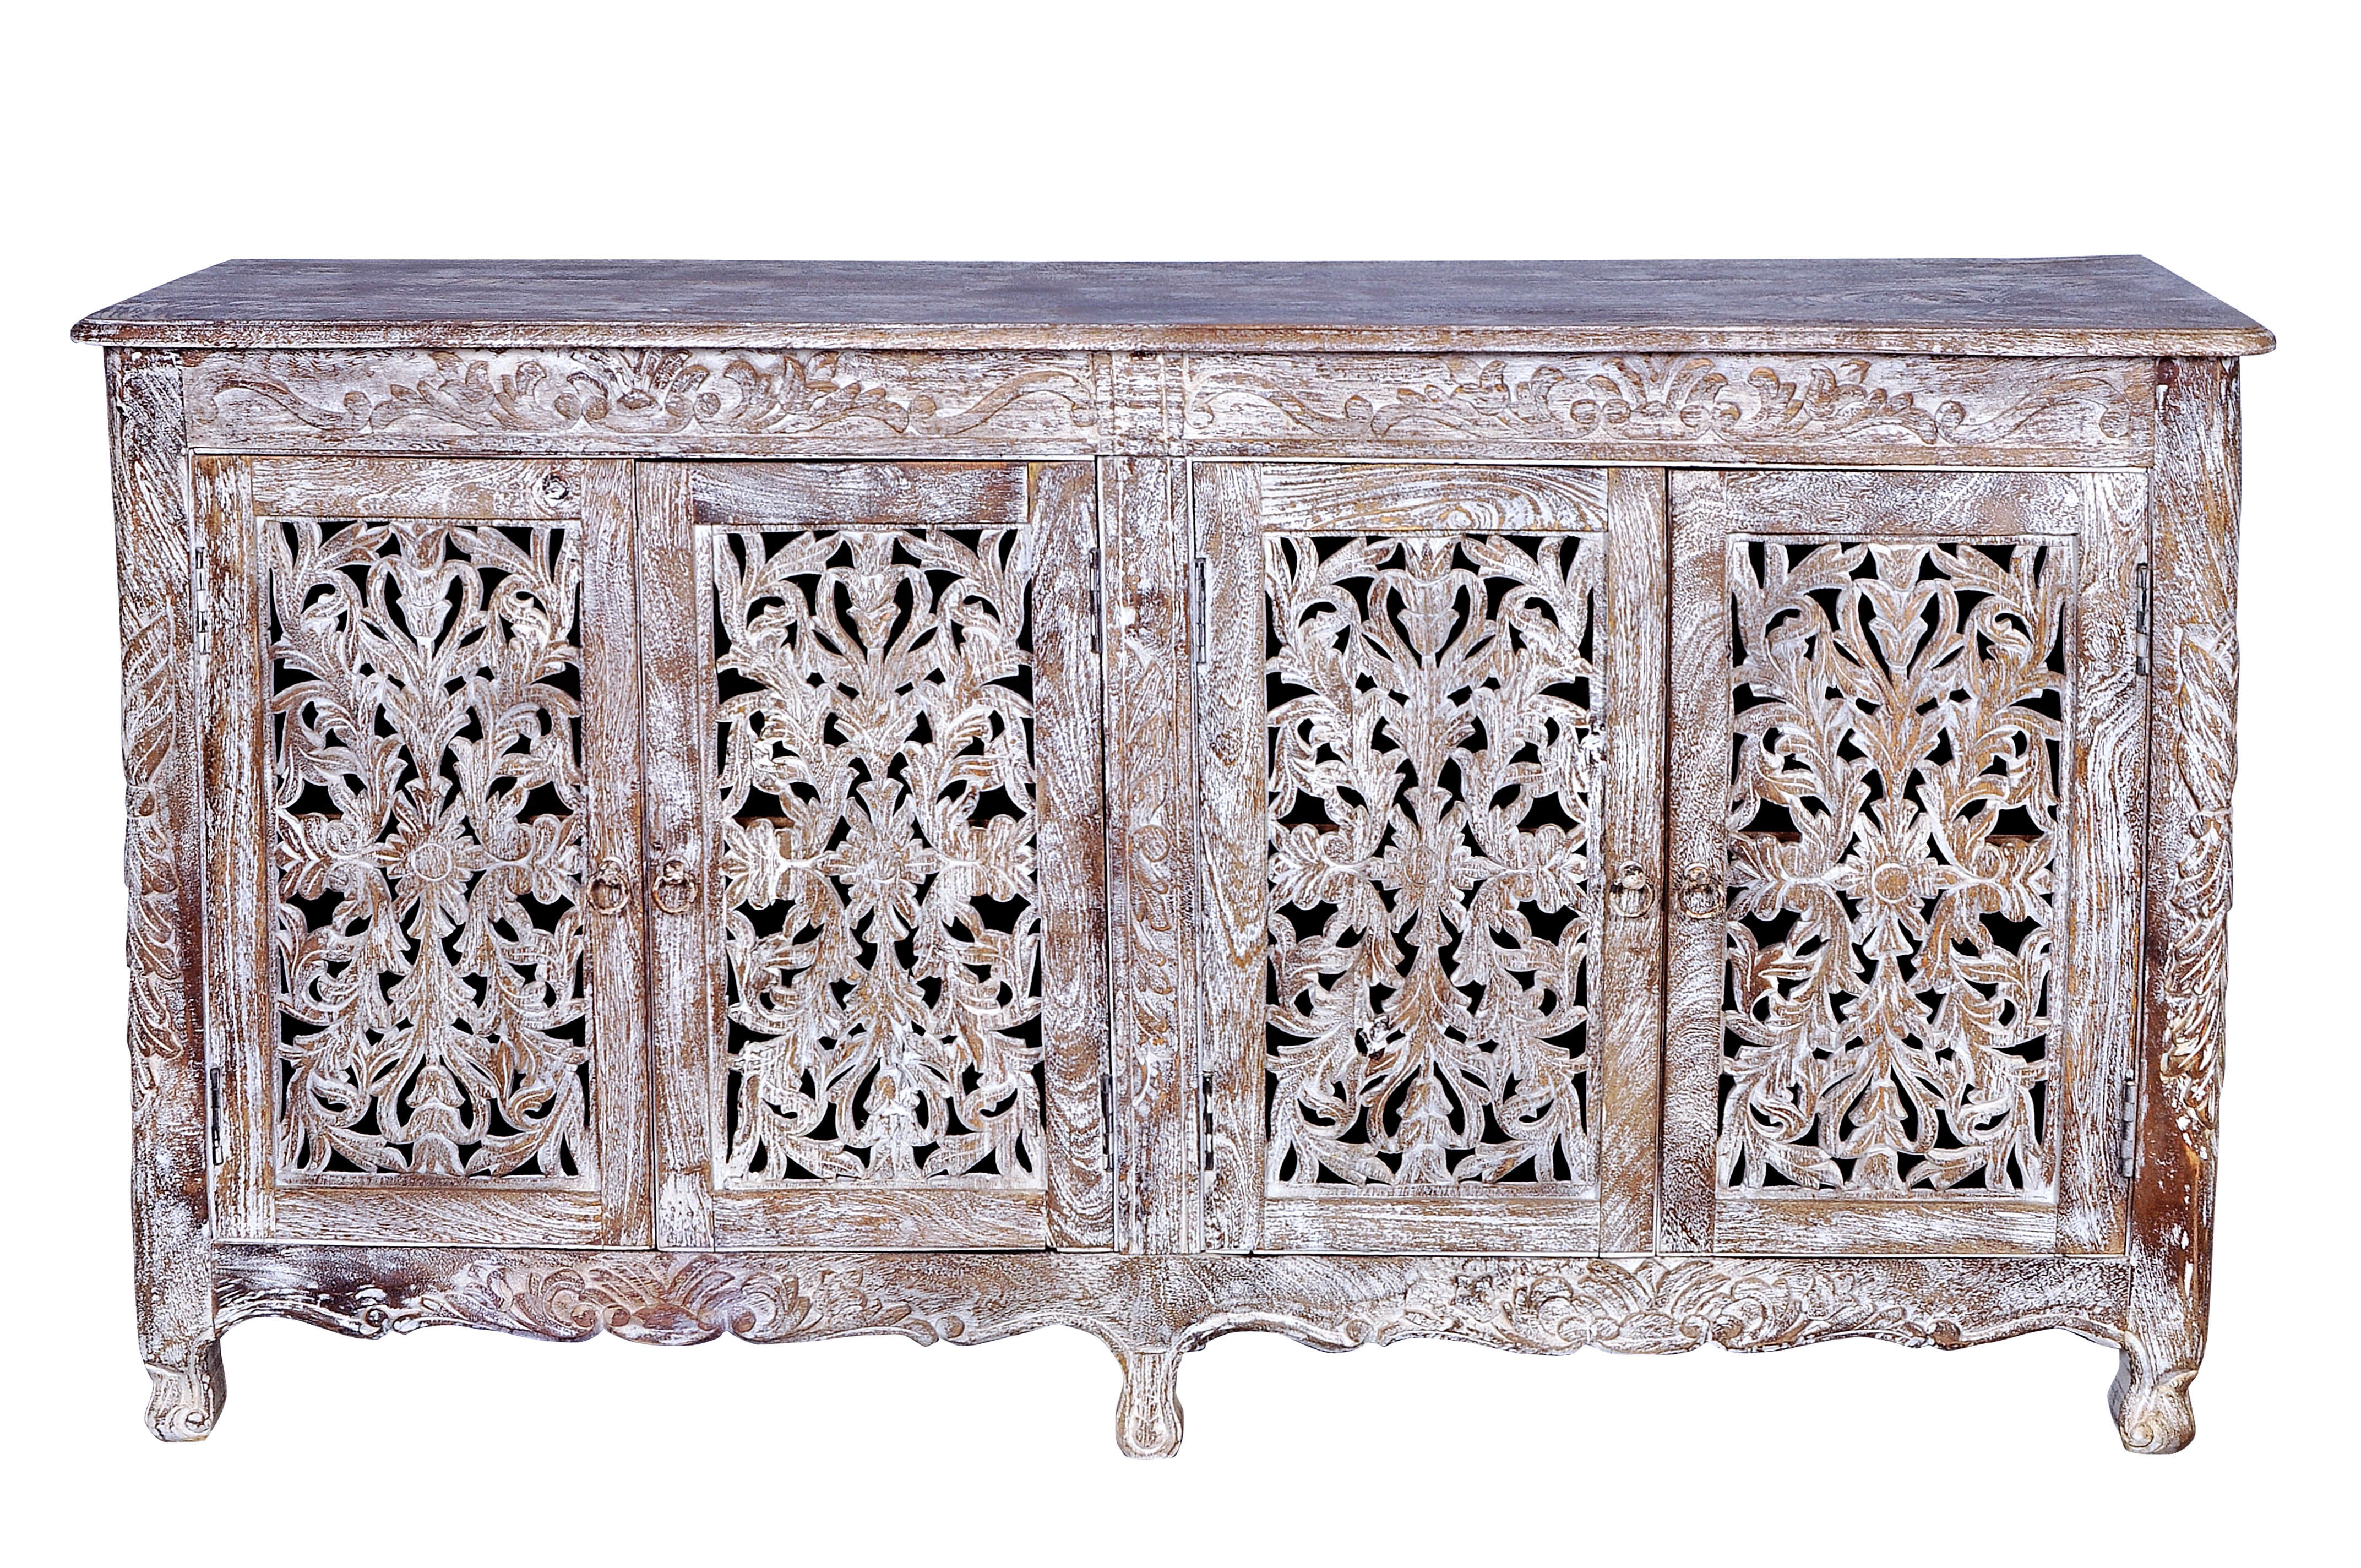 Bungalow Rose Aveliss Carved 4 Door Antique Whitewash Sideboard Regarding Most Recent White Wash 4 Door Sideboards (View 1 of 20)